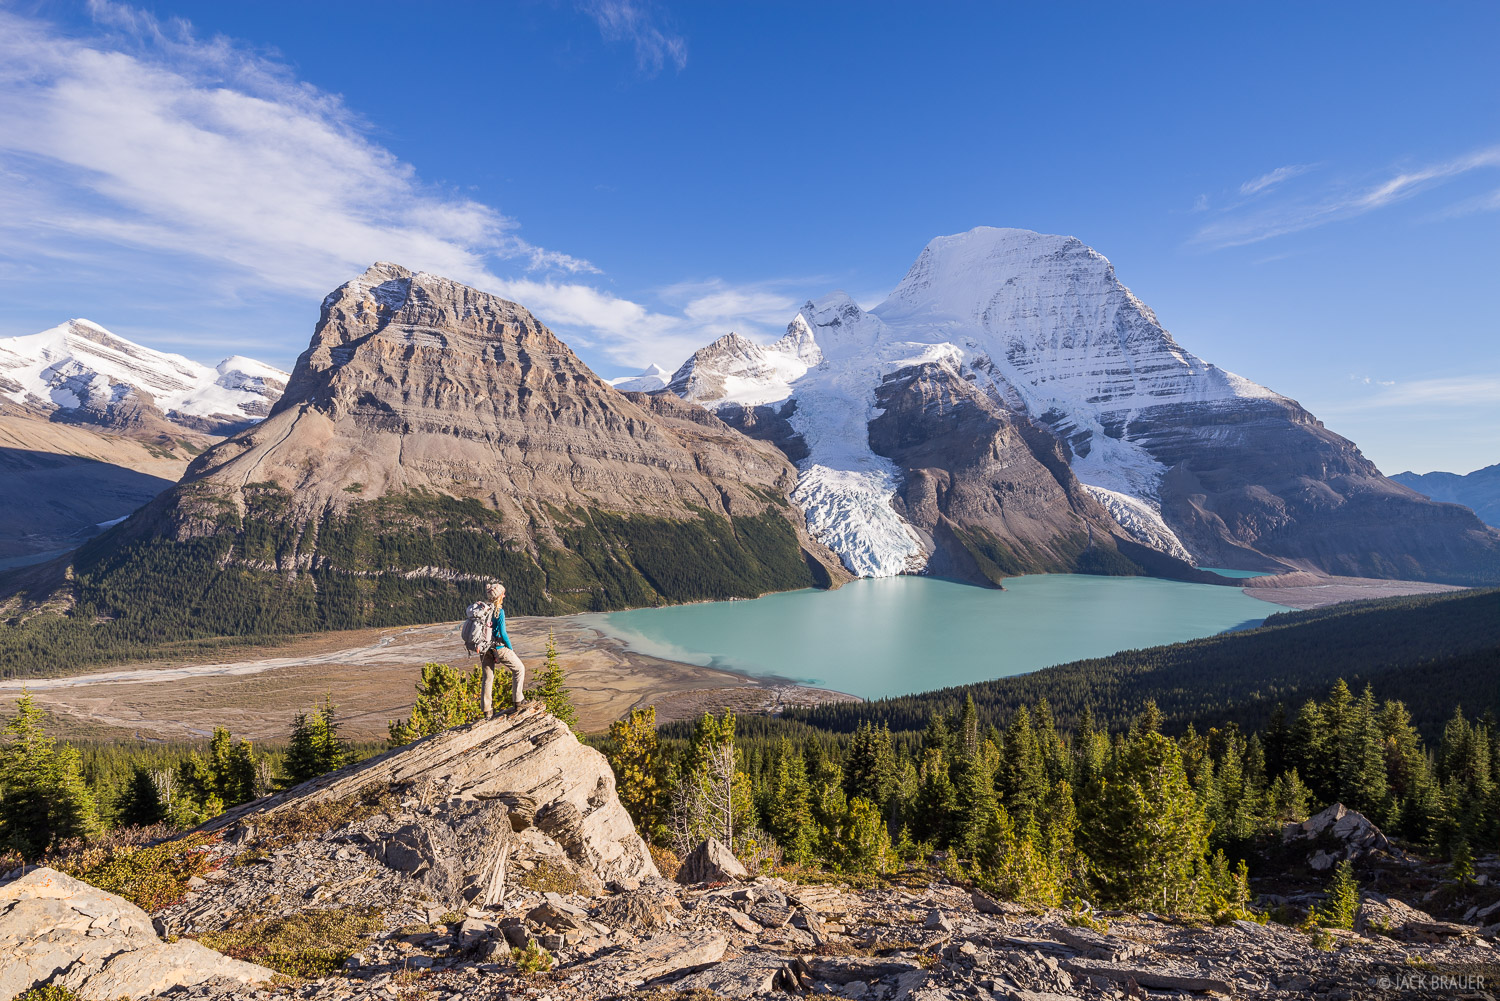 Berg Lake, British Columbia, Canada, Mount Robson Provincial Park, BC, photo